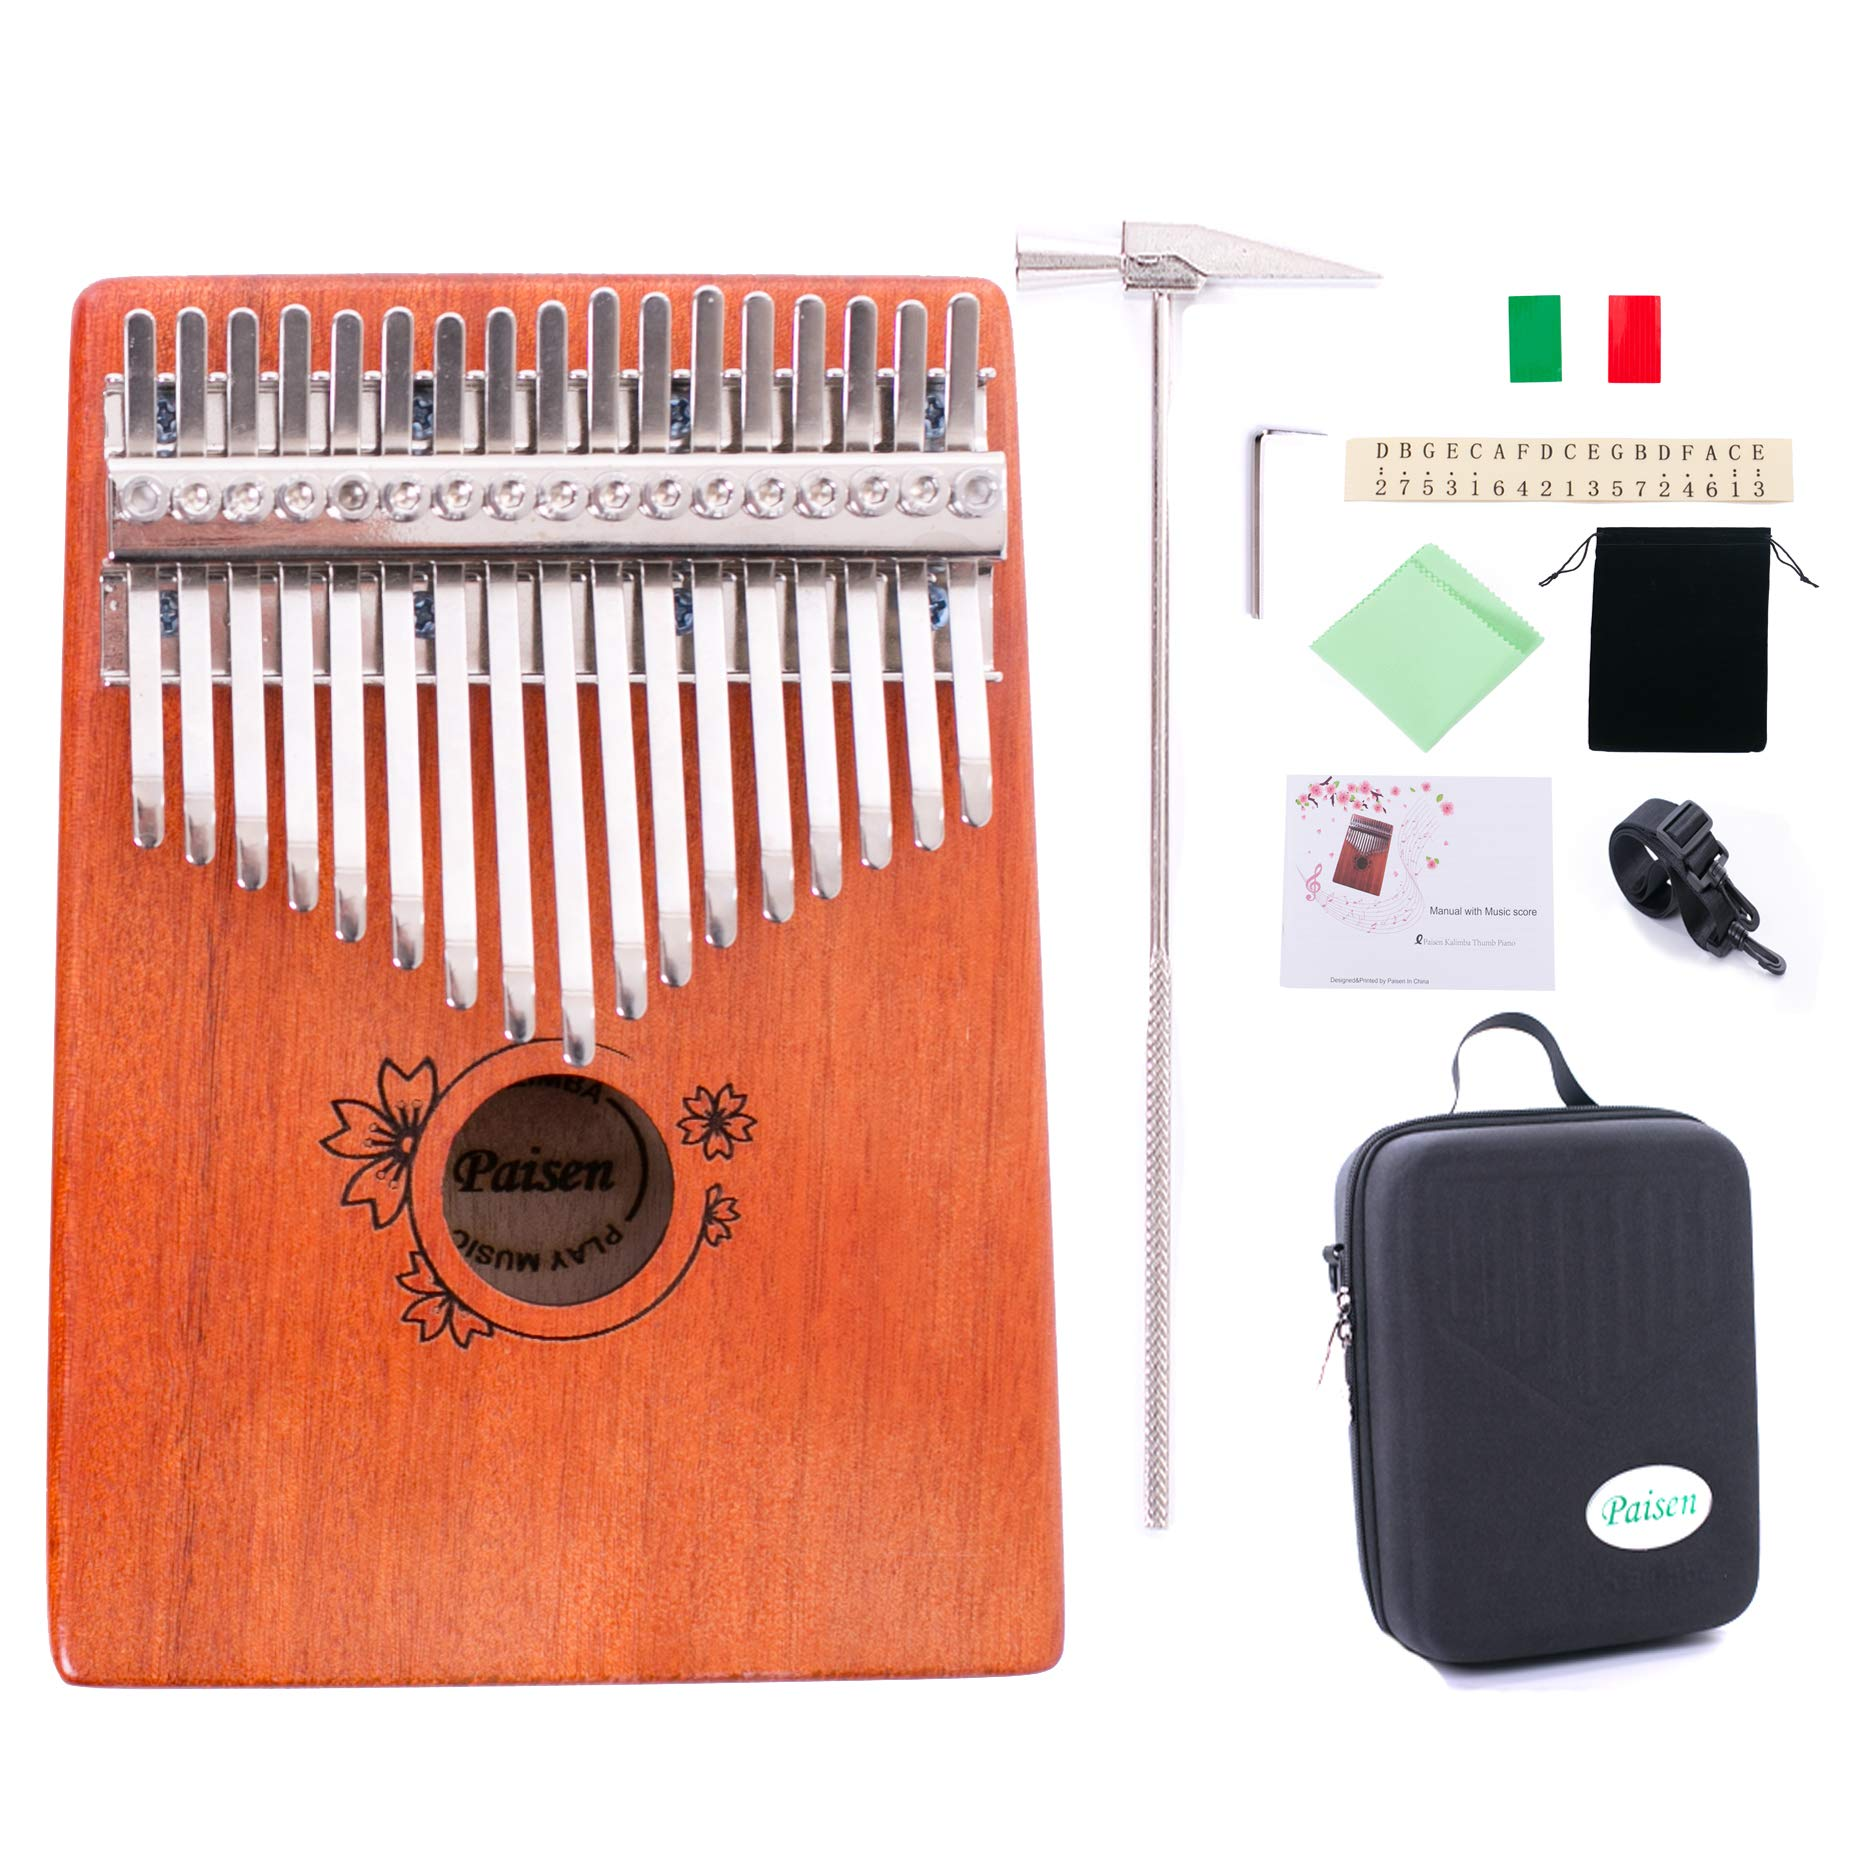 Paisen Kalimba 17 keys Thumb Piano with Study Instruction and Tune Hammer,Mahogany Wood Finger Piano with Portable Carrying Bag and Shoulder Strap for Kids Adult Beginners by Paisen (Image #1)